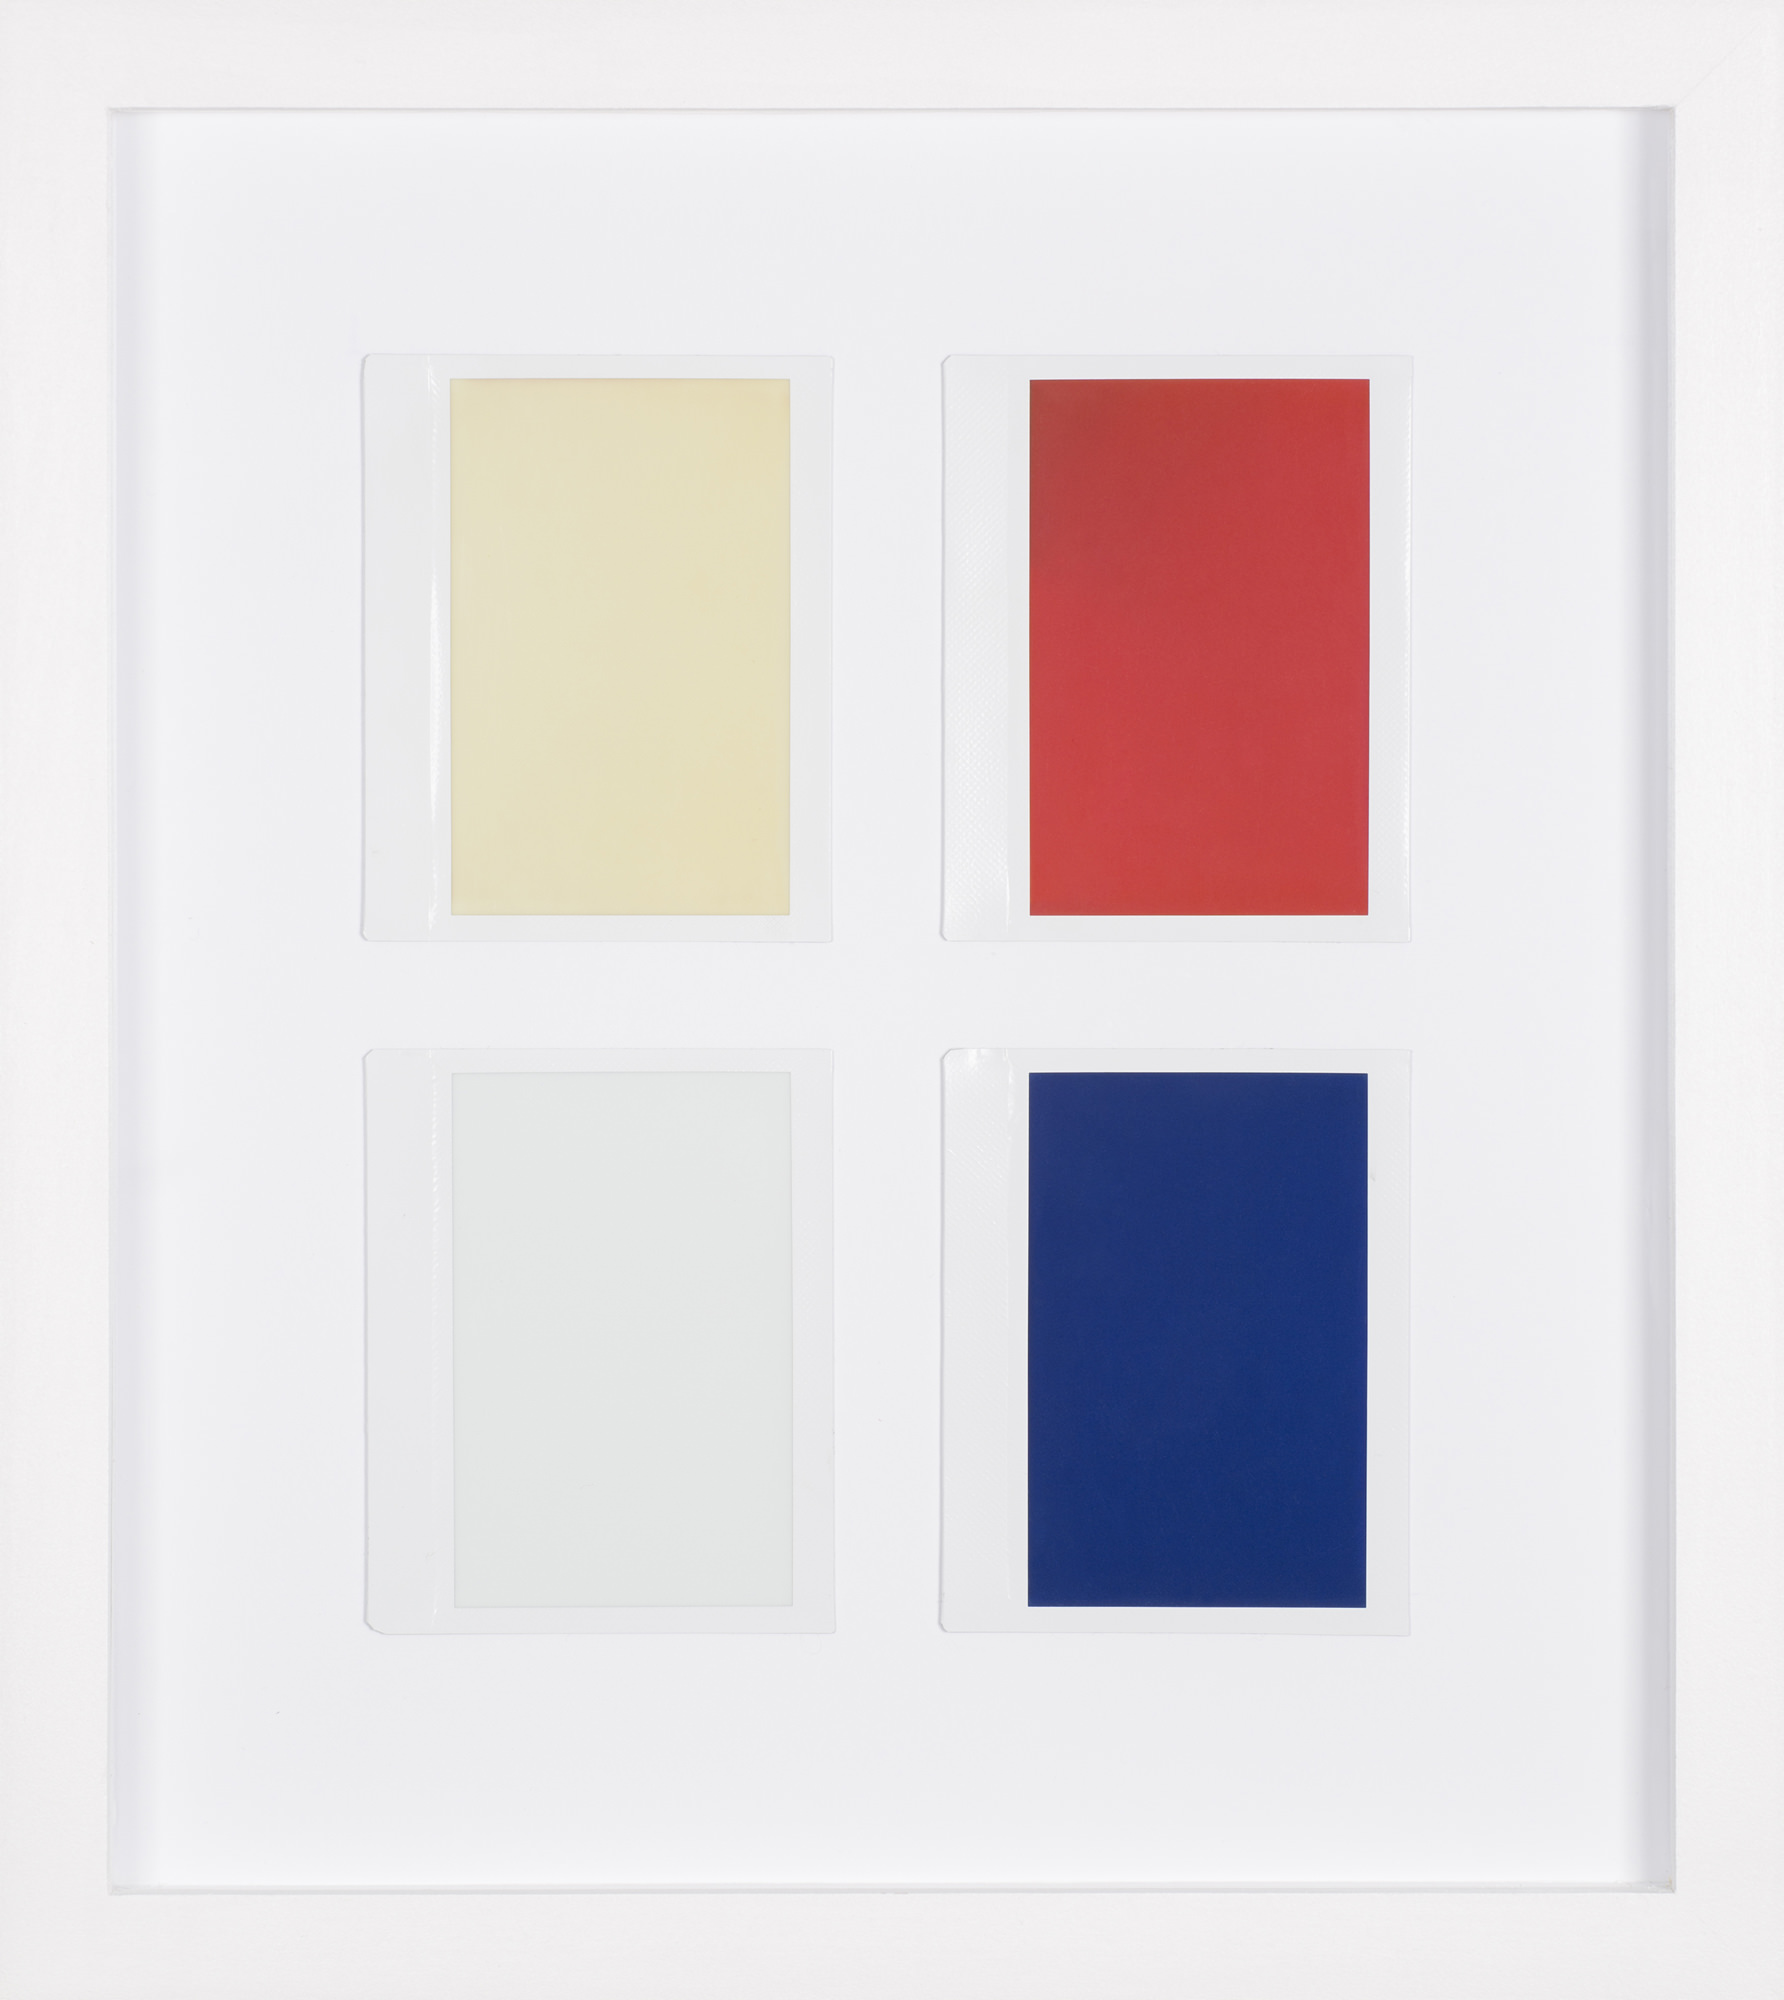 Máté Dobokay: Composition no. 1, Mondrian